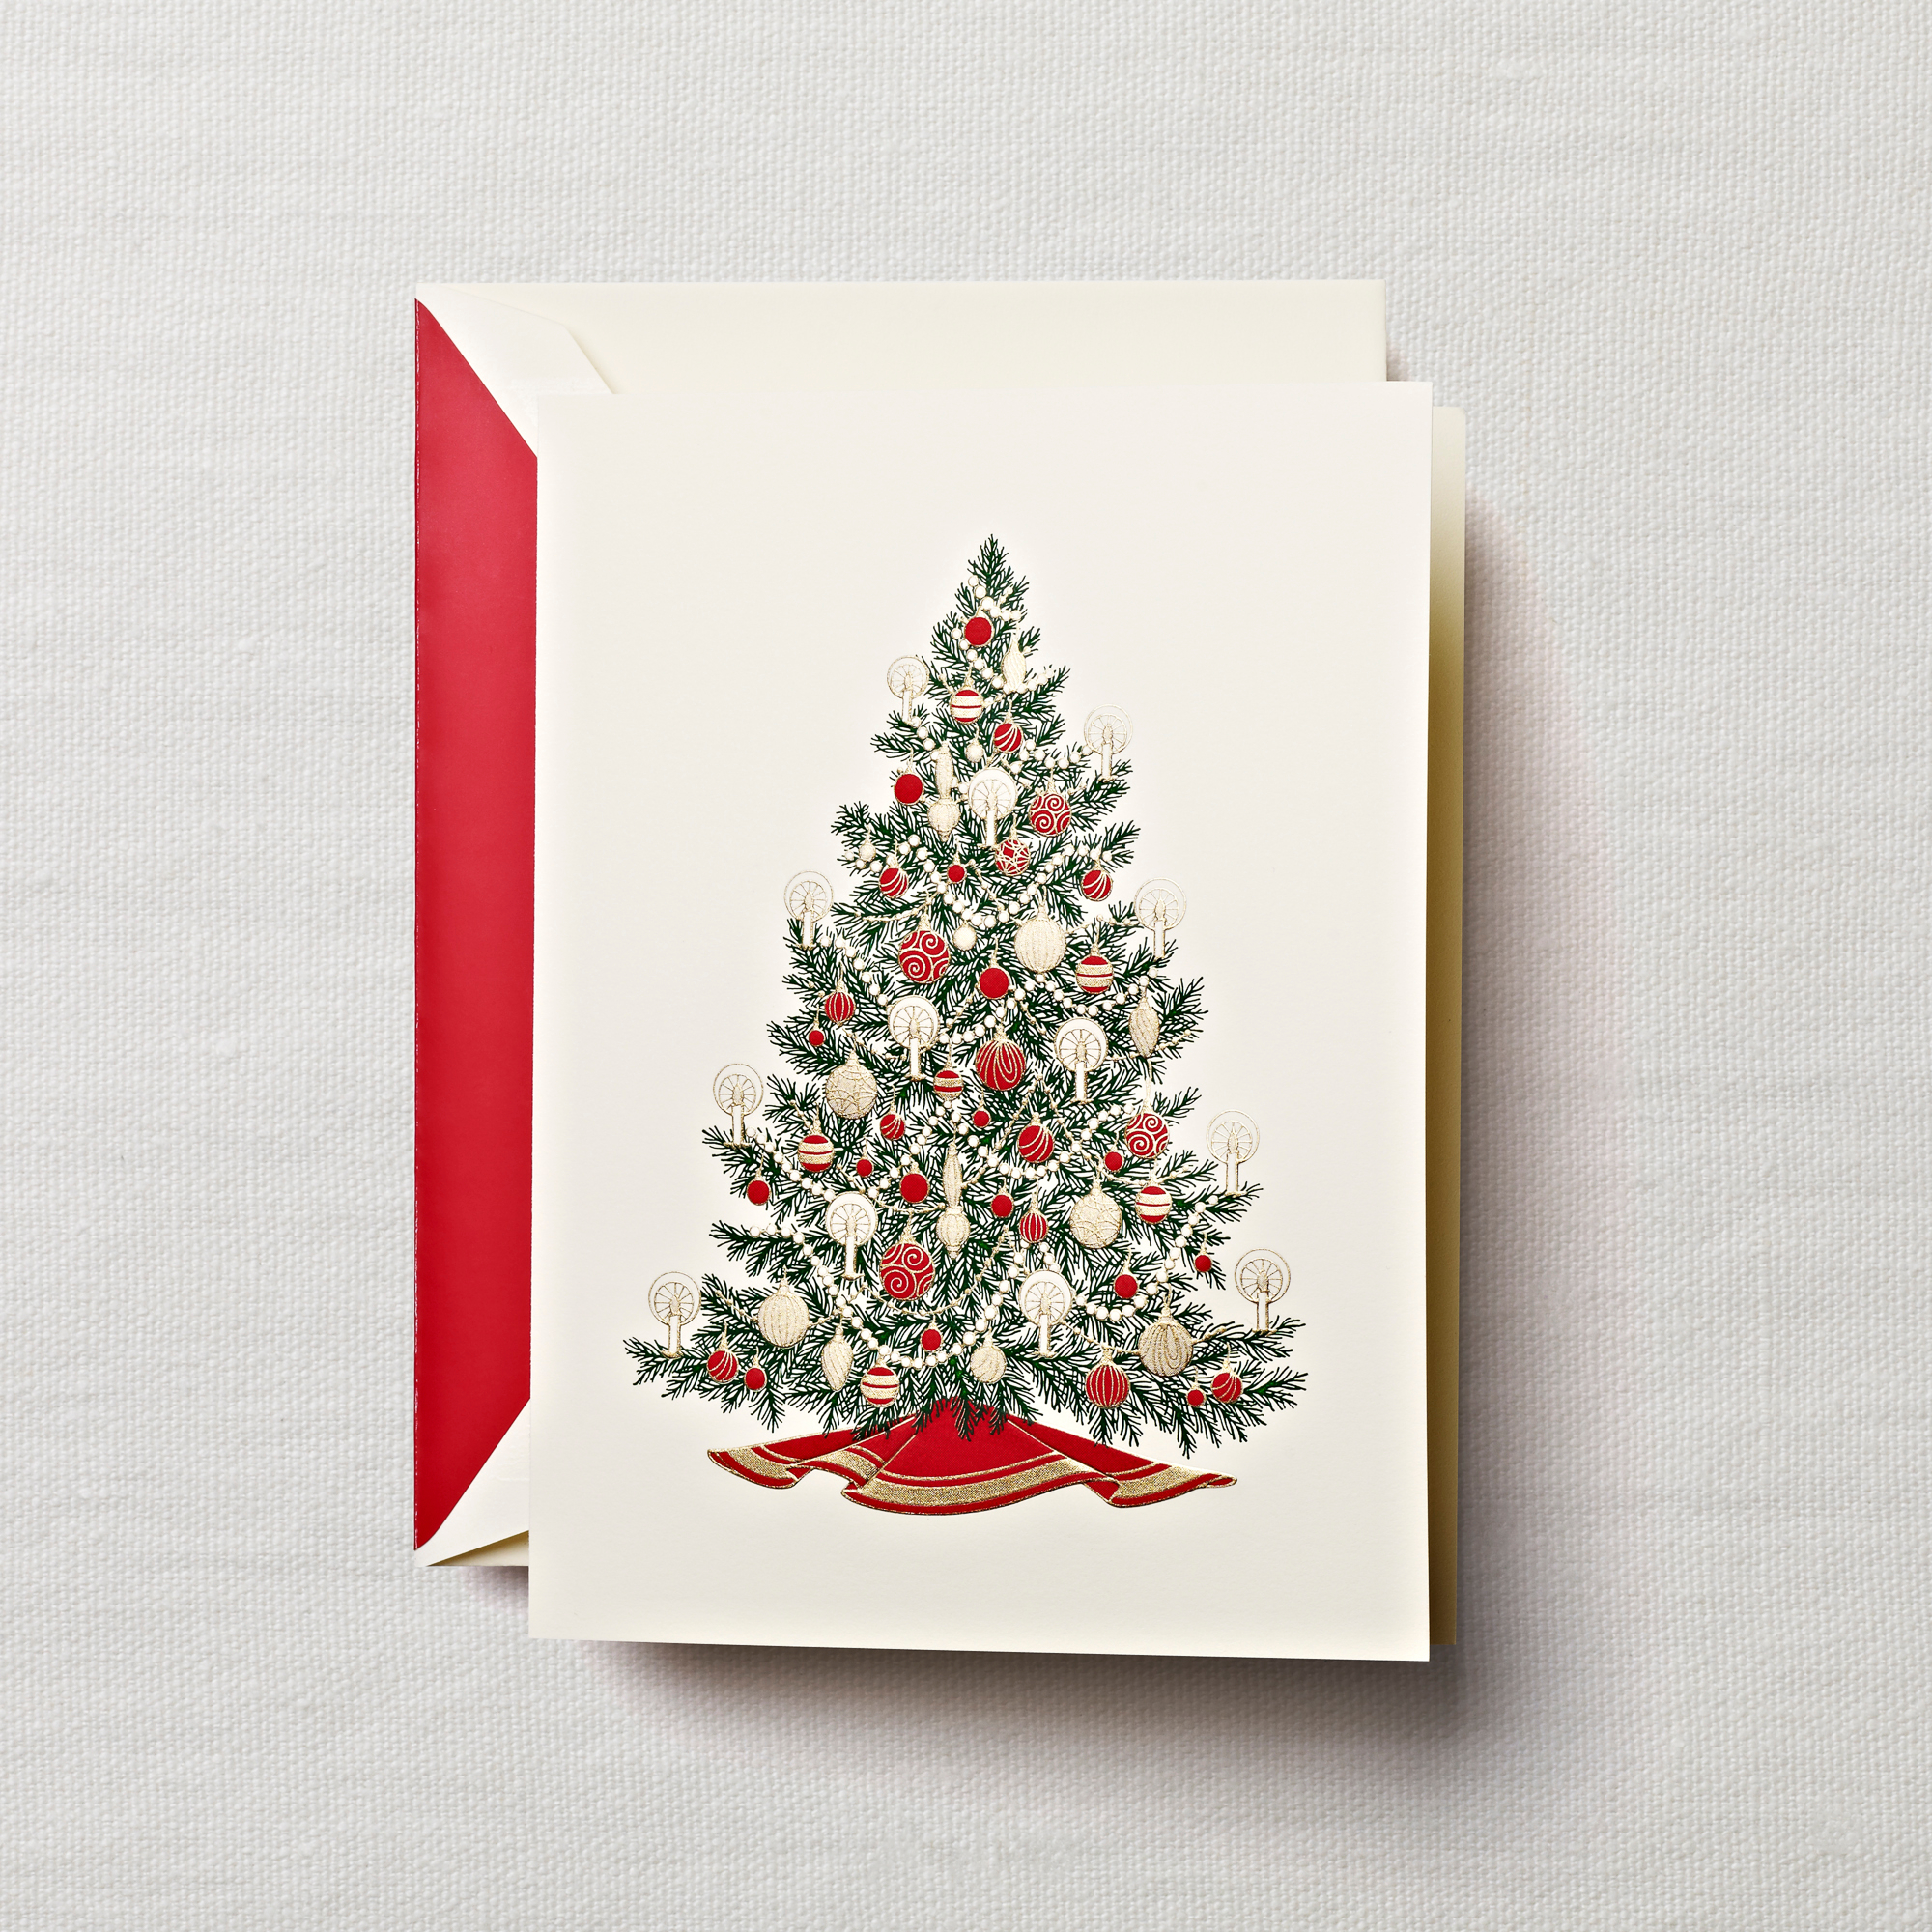 Crane Amp Co Engraved Christmas Tree Cards Set Of 10 Gumps